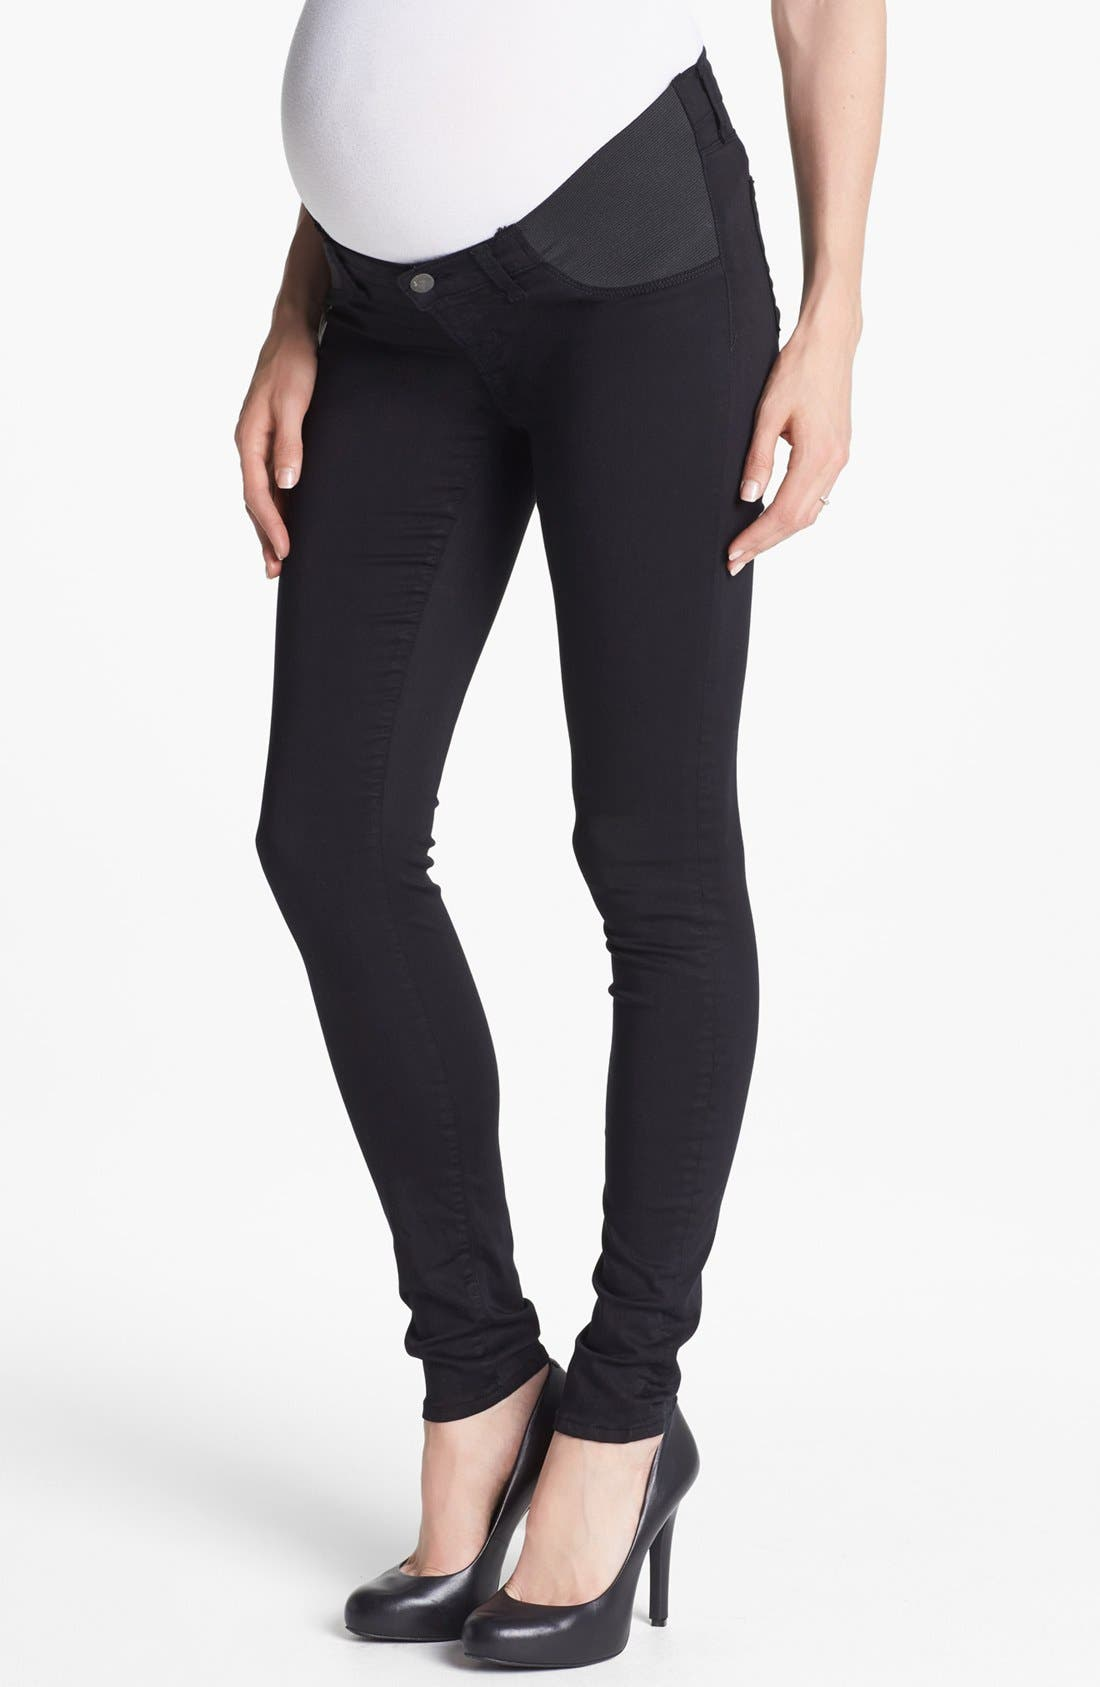 Alternate Image 1 Selected - J Brand '3402' Denim Maternity Leggings (Black)